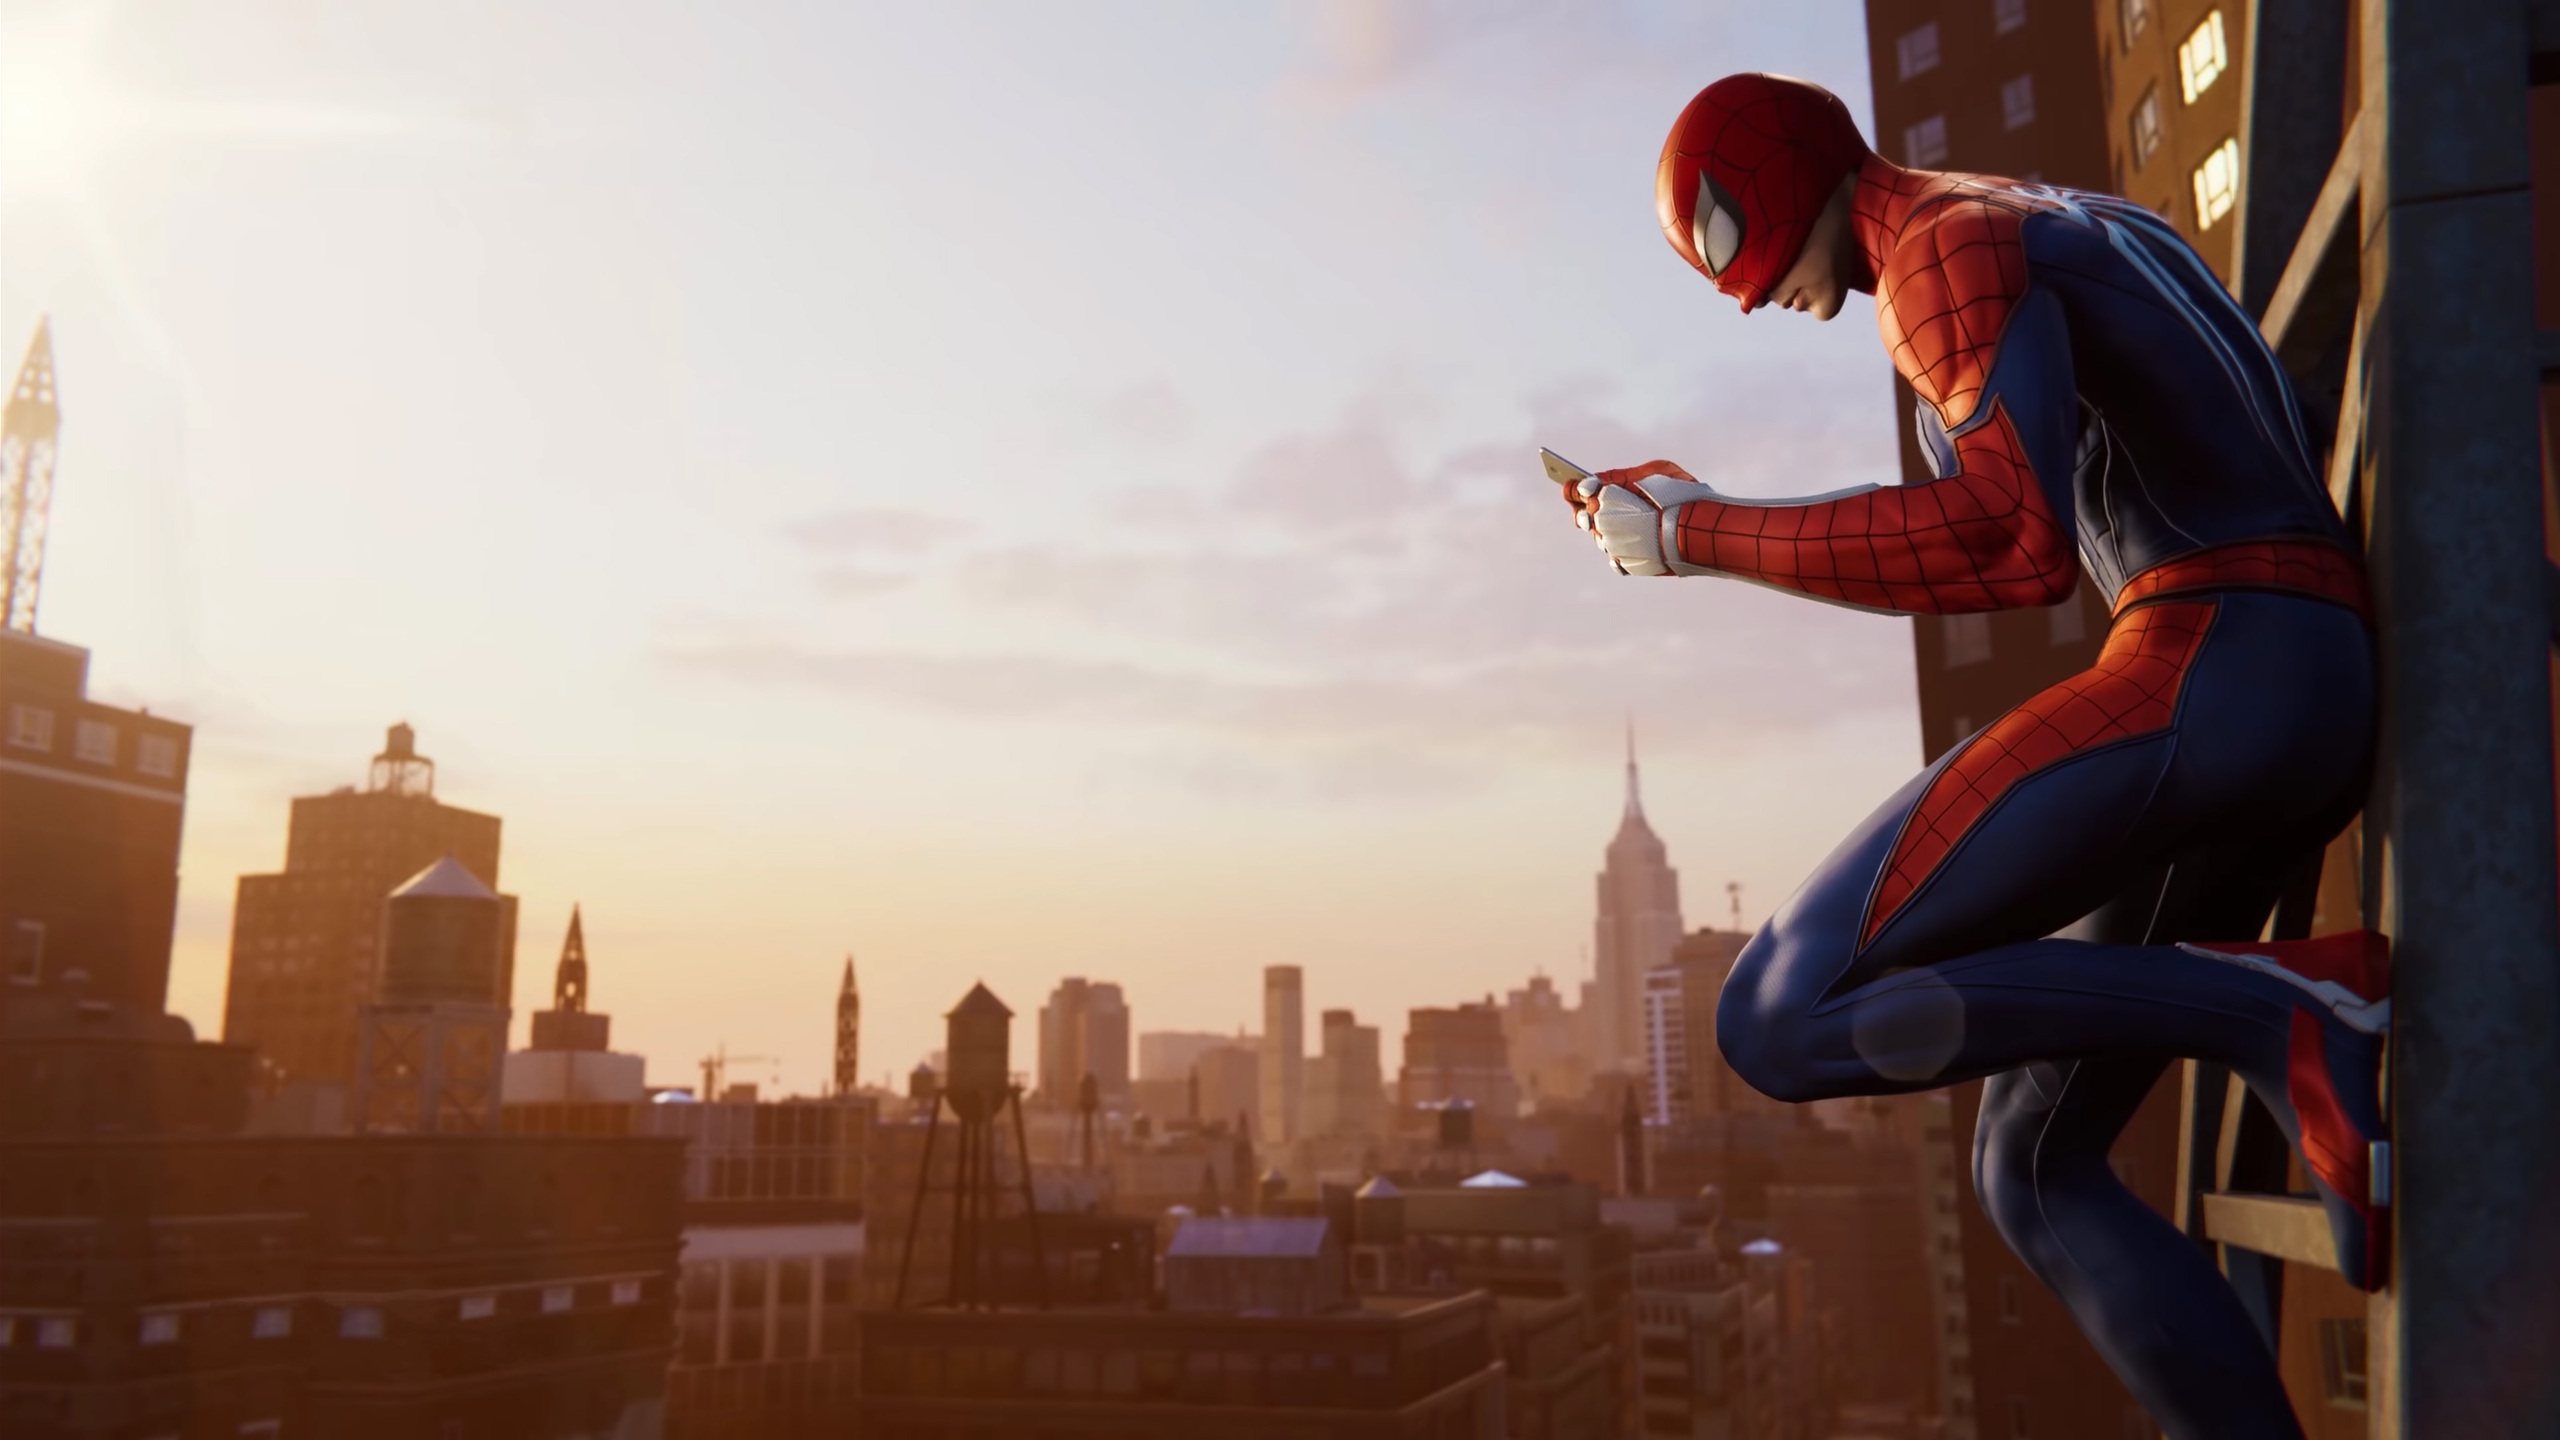 2560x1440 Spiderman Ps4 Pro 5k 1440p Resolution Hd 4k